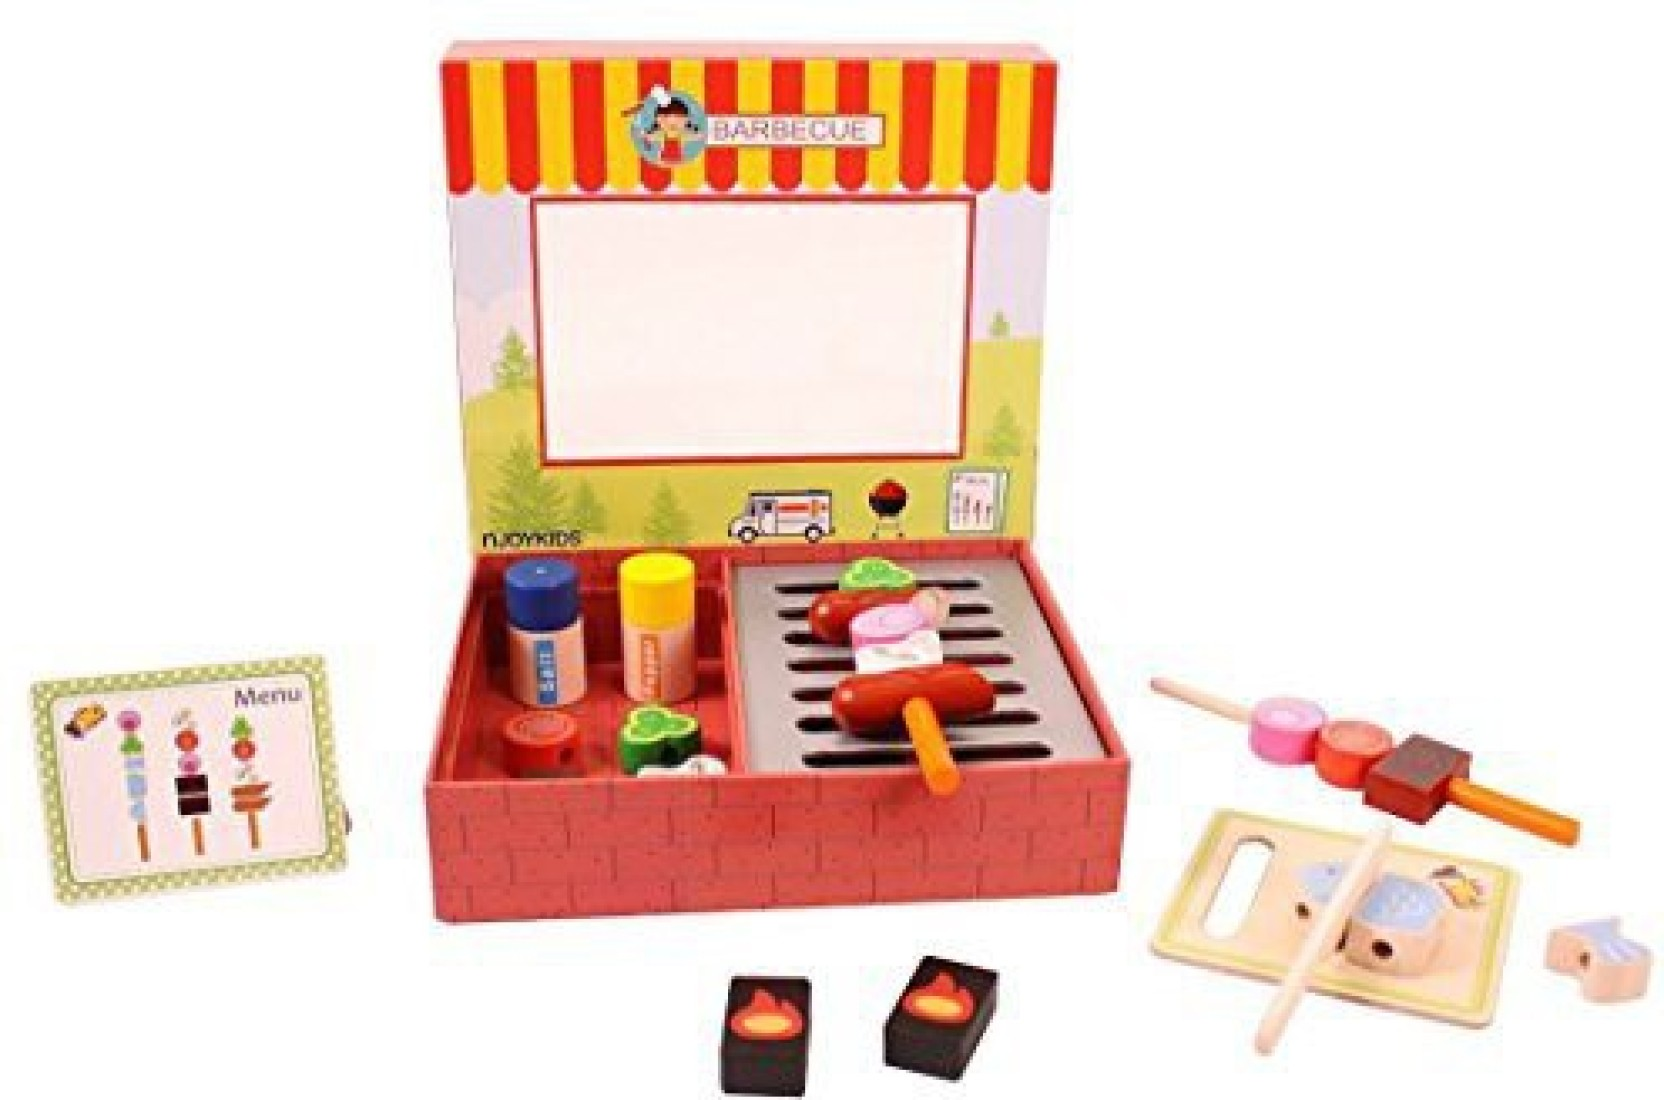 njoykids barbeque (bbq) grill pretend play wooden toy set